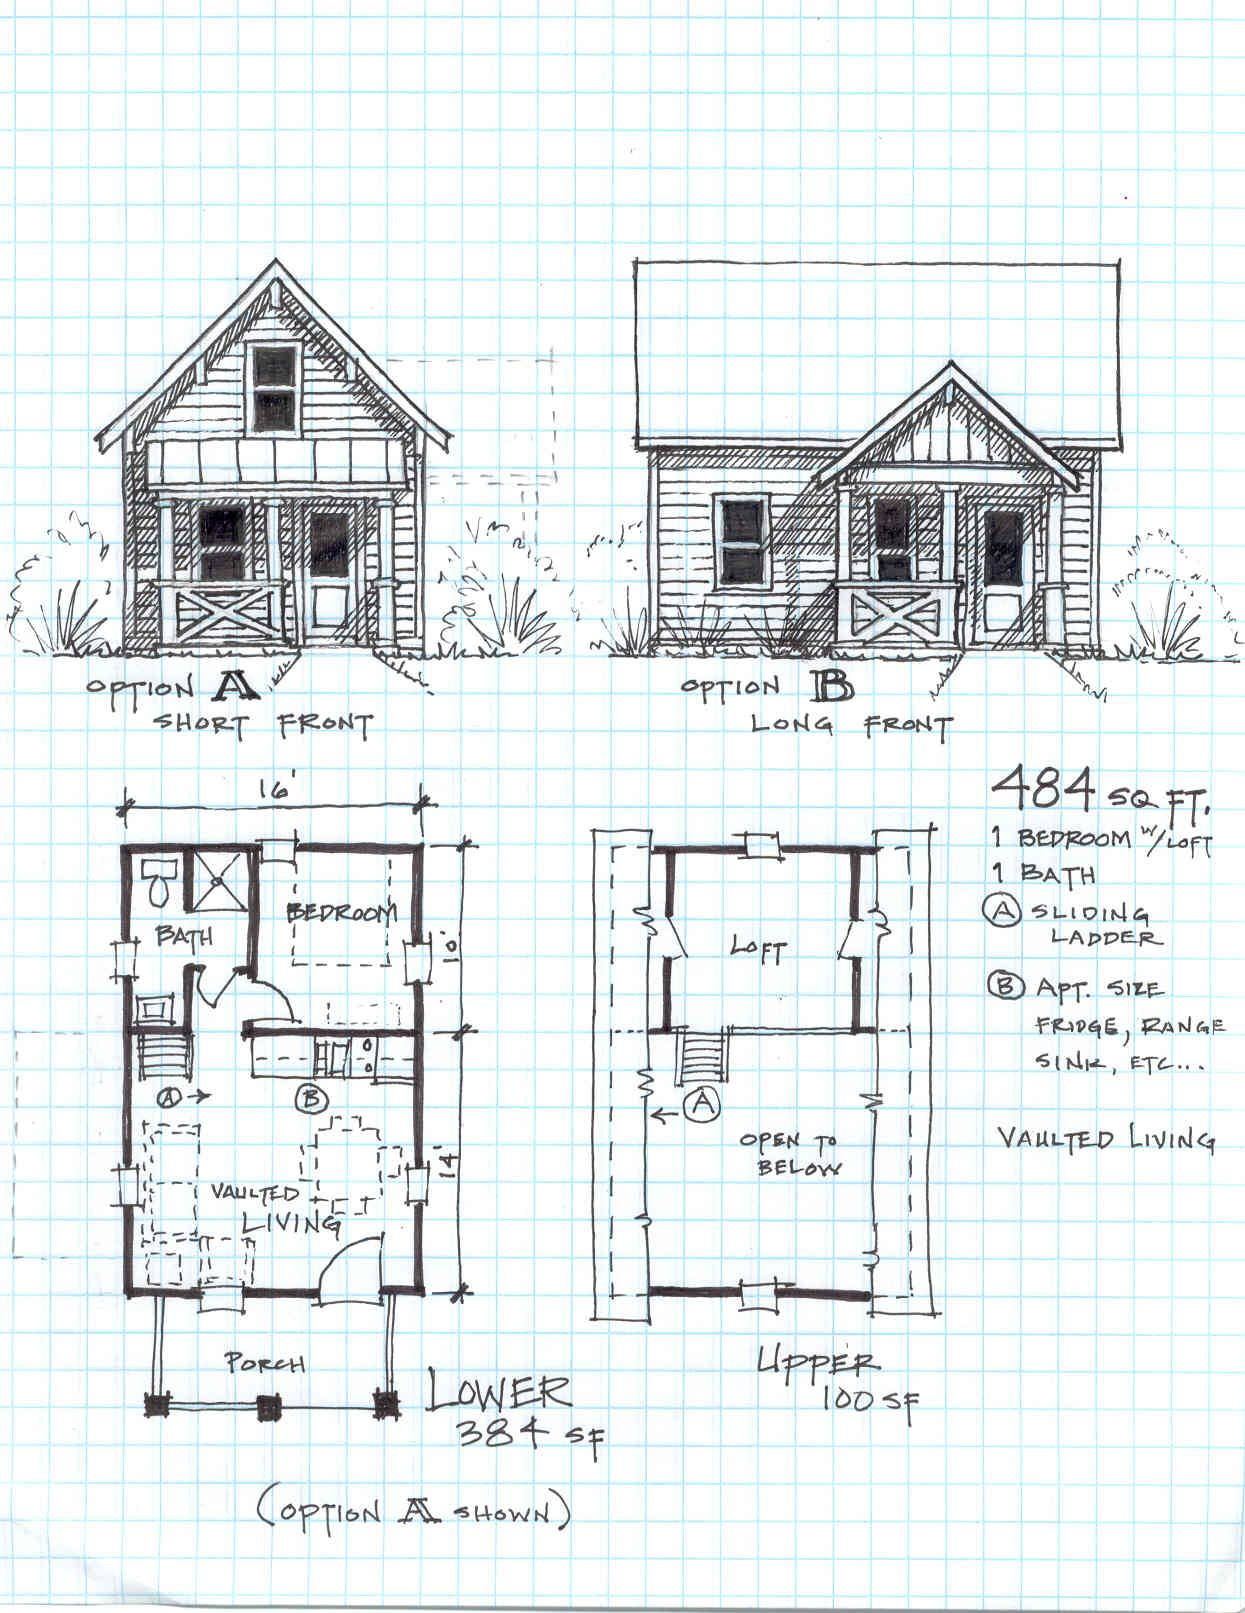 Cabin Design Ideas small rustic log cabins cabin home designs I Adore This Floor Plan I Really Want To Live In A Small Small Cabin Planscabin